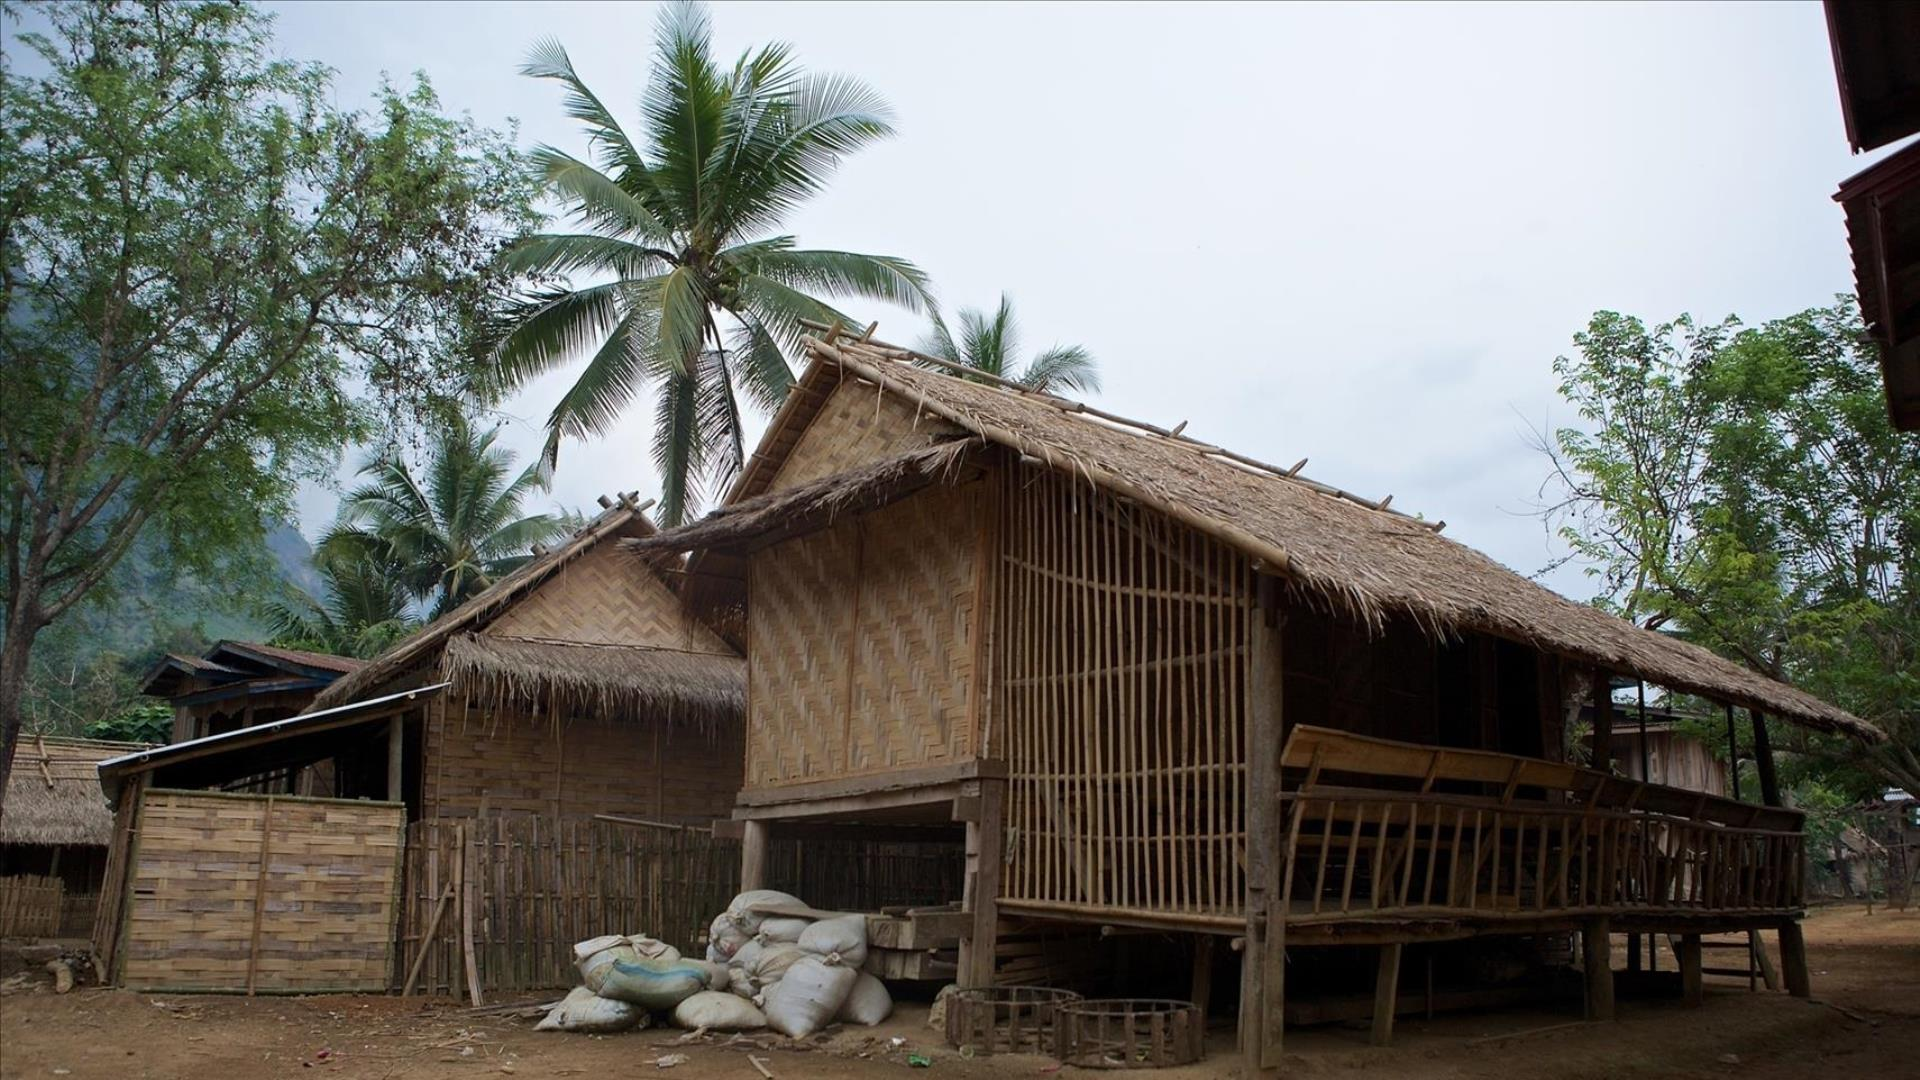 Laos, Luang Prabang : Fair Trek Full Day Adventure Hike - 1 Day |  Trekking to Hmong & Khmu Villages